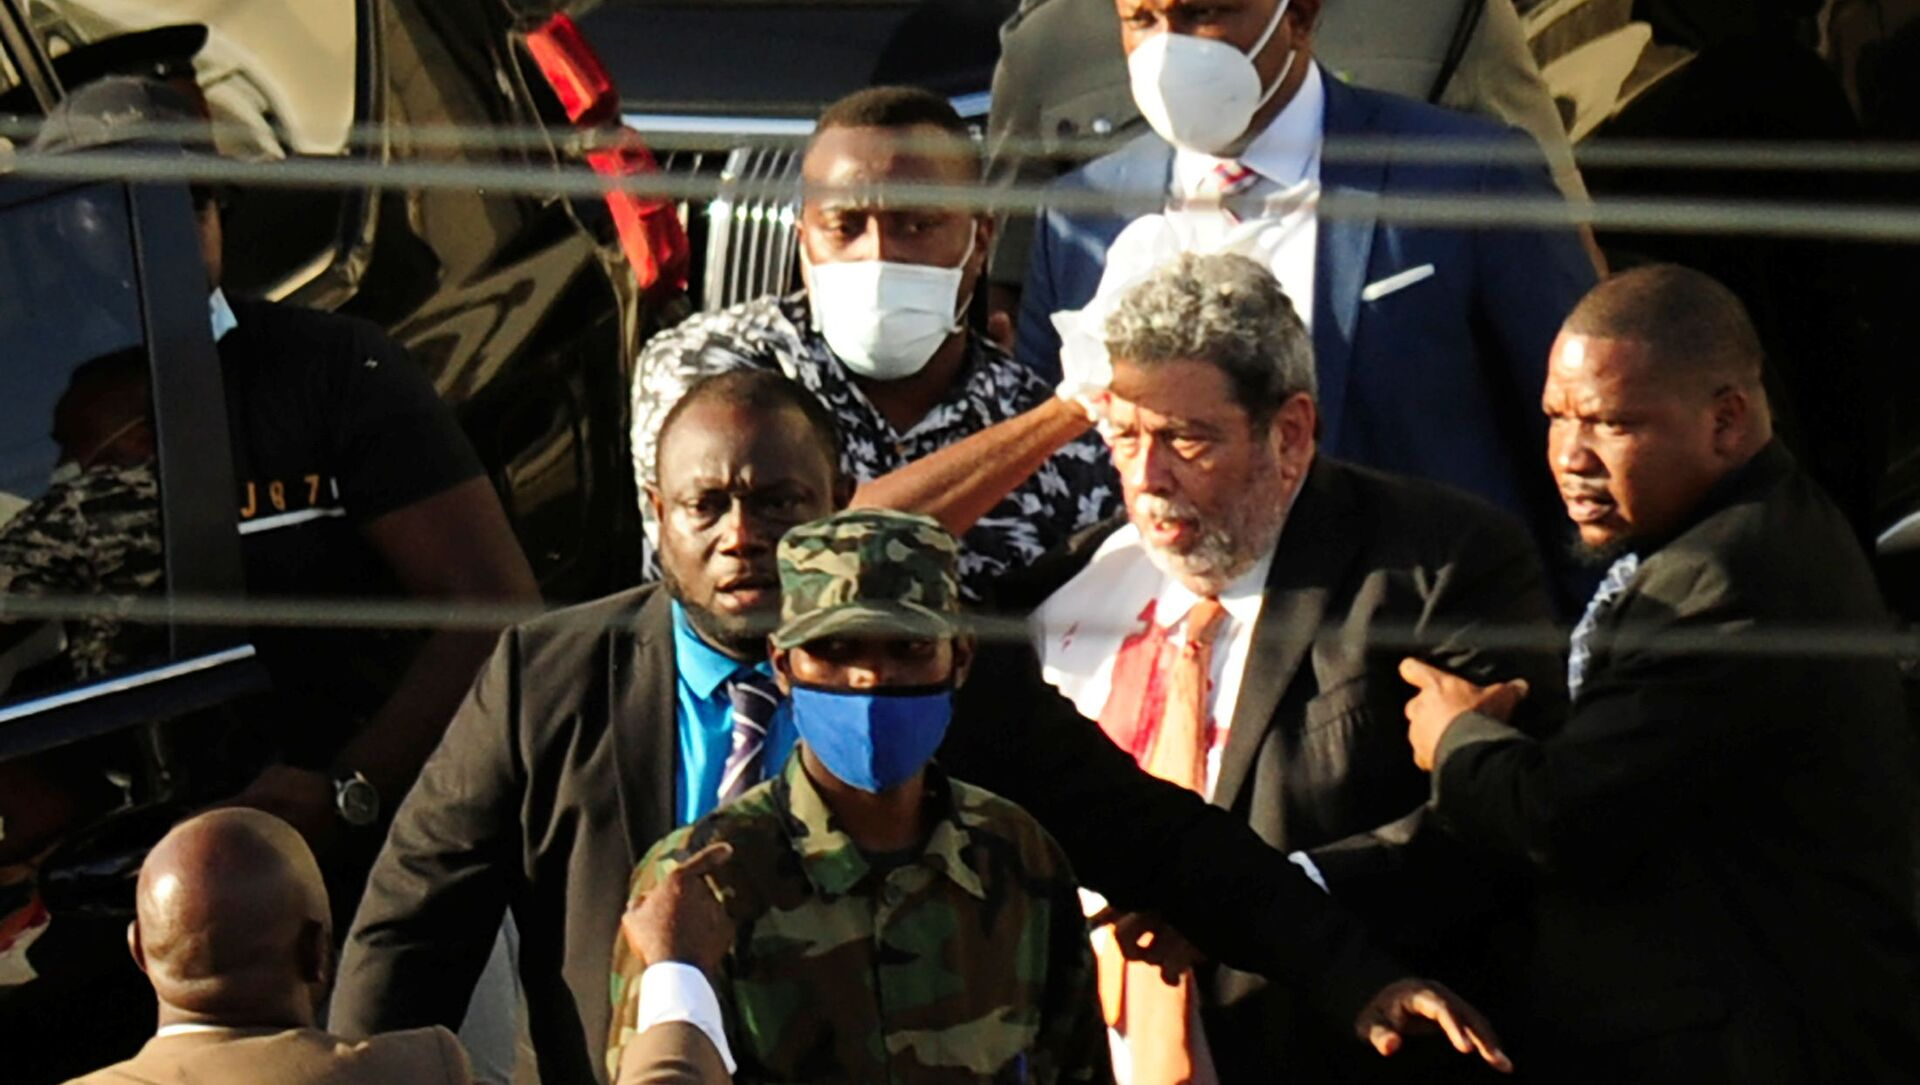 St. Vincent and the Grenadines Prime Minister Ralph Gonsalves, his shirt covered in blood, is evacuated after media reported that he was hit by a stone during a protest in Kingstown, St. Vincent and the Grenadines August 5, 2021.  - Sputnik International, 1920, 06.08.2021